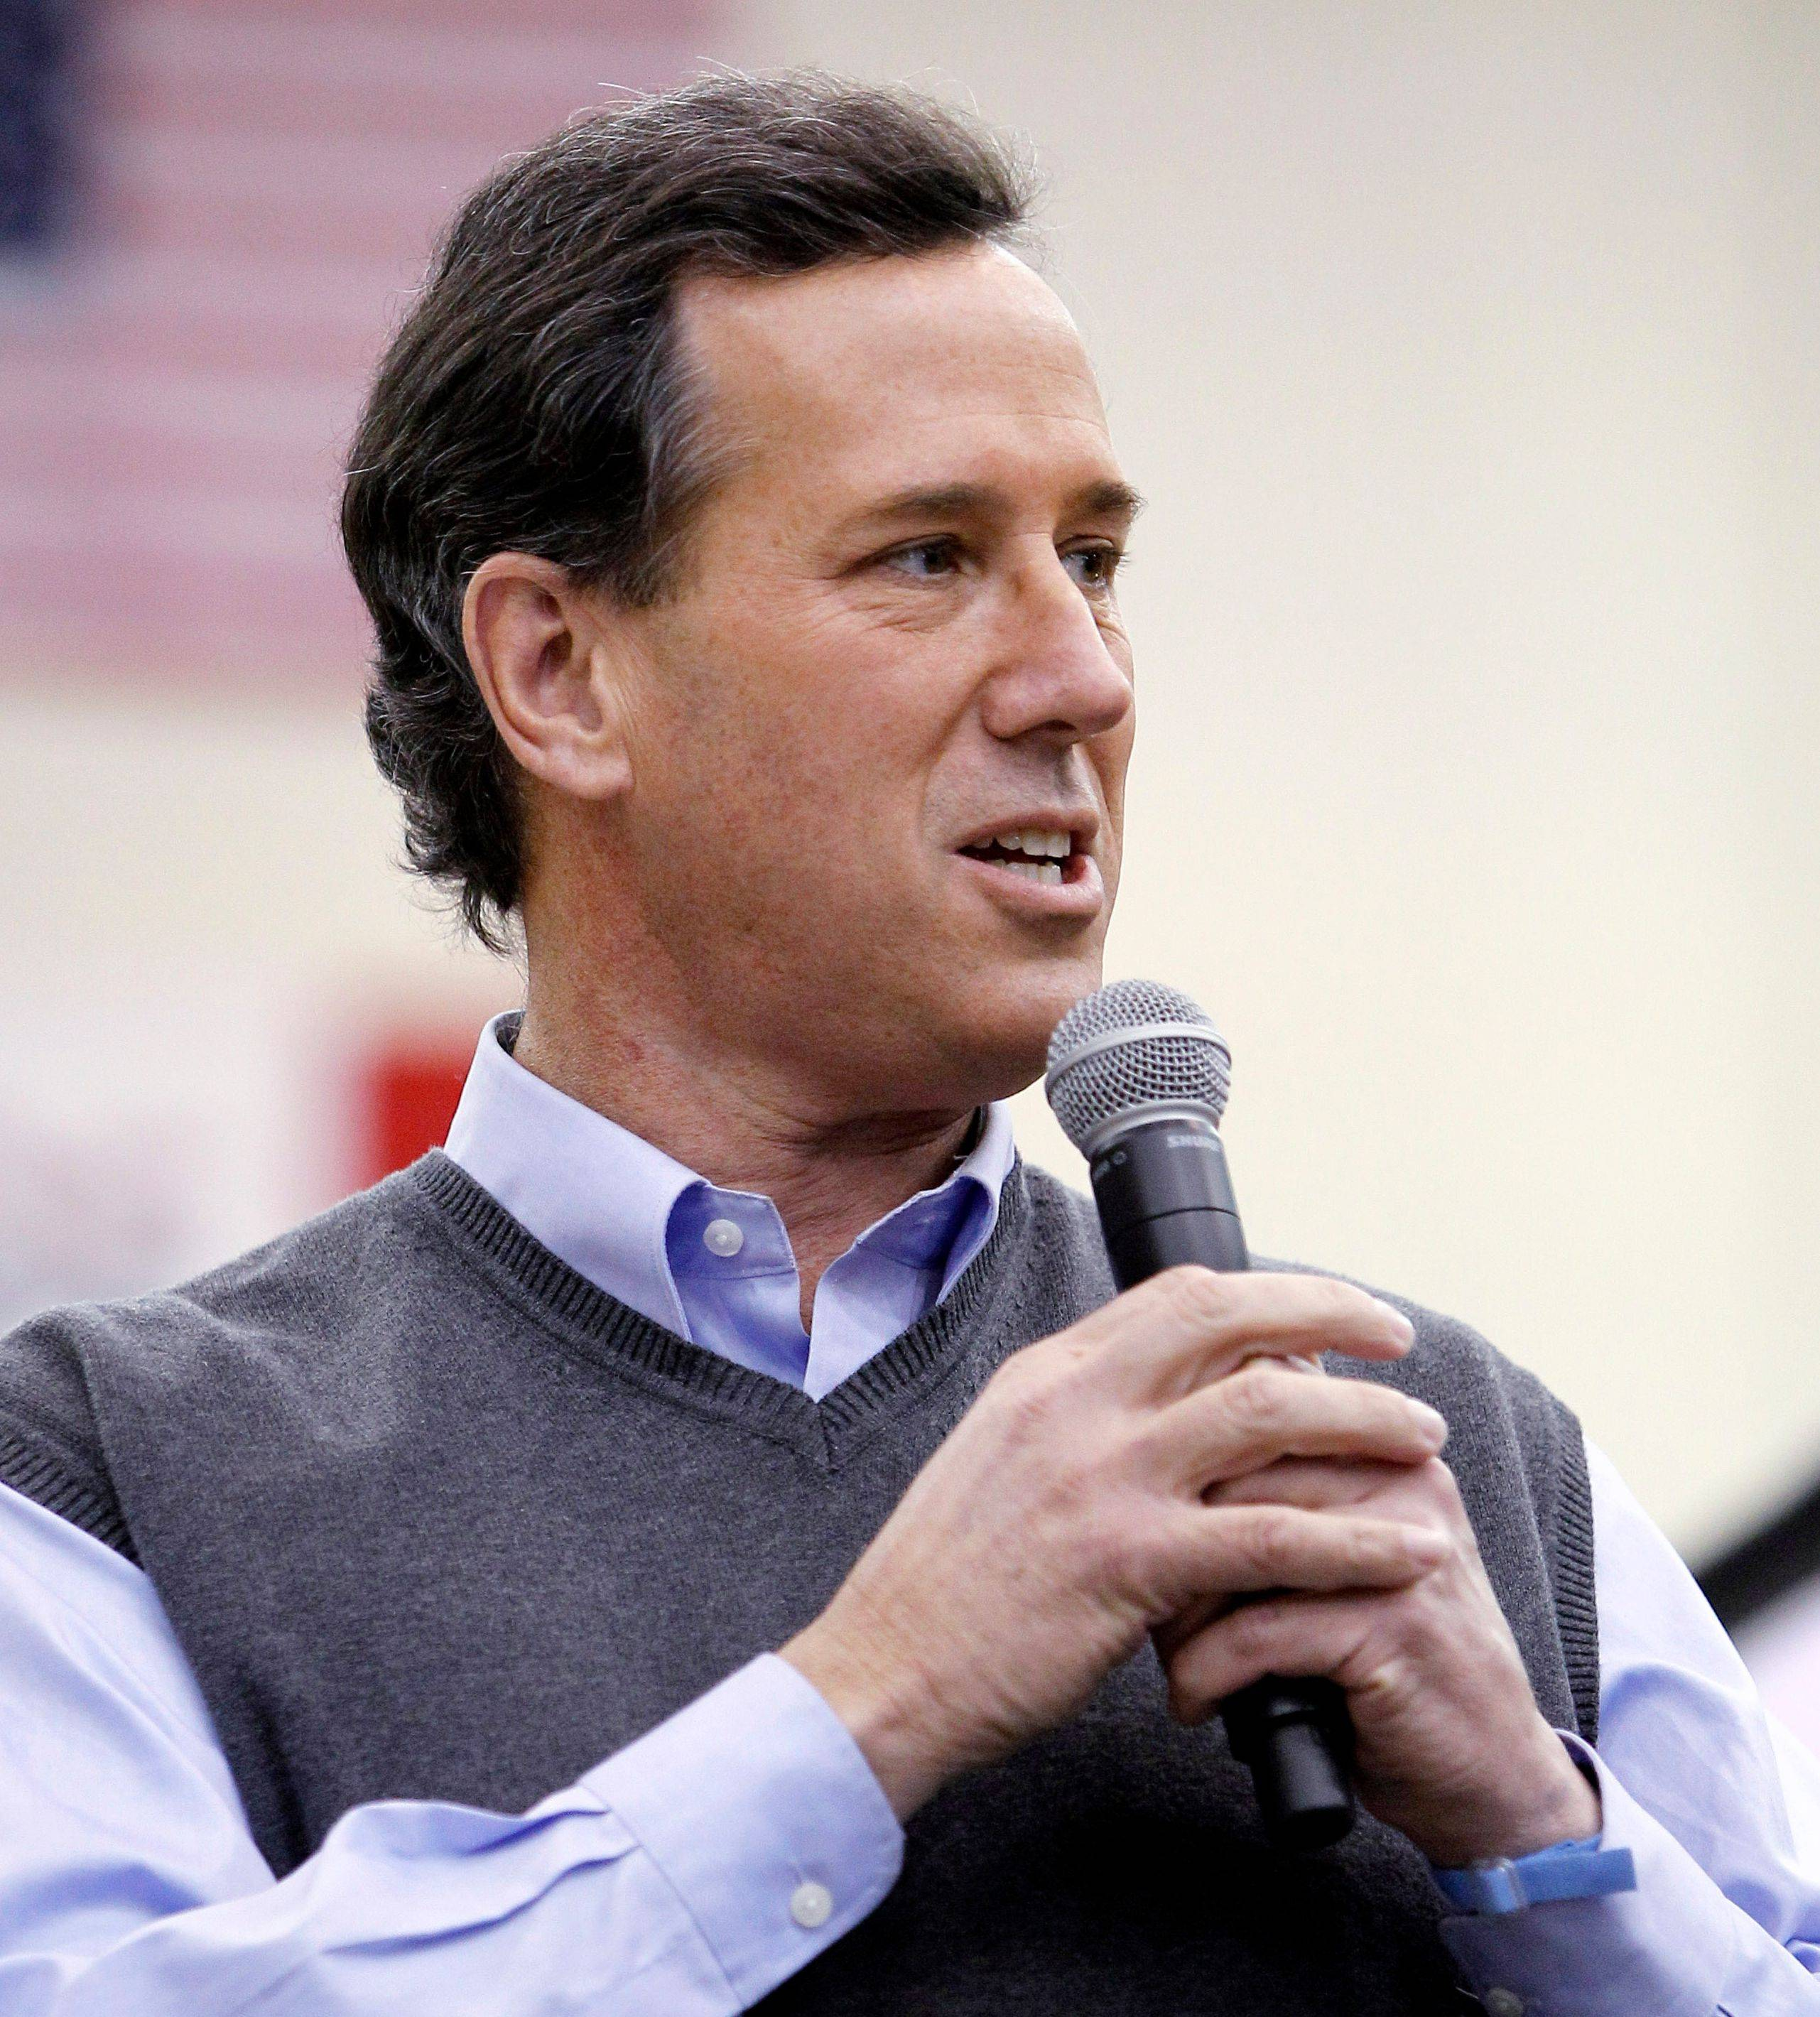 The Illinois campaign for Rick Santorum, left, knew his petitions were short of the number of signatures needed for some delegates to appear on ballots, but it struck a deal with Mitt Romney's campaign to drop all petition challenges.